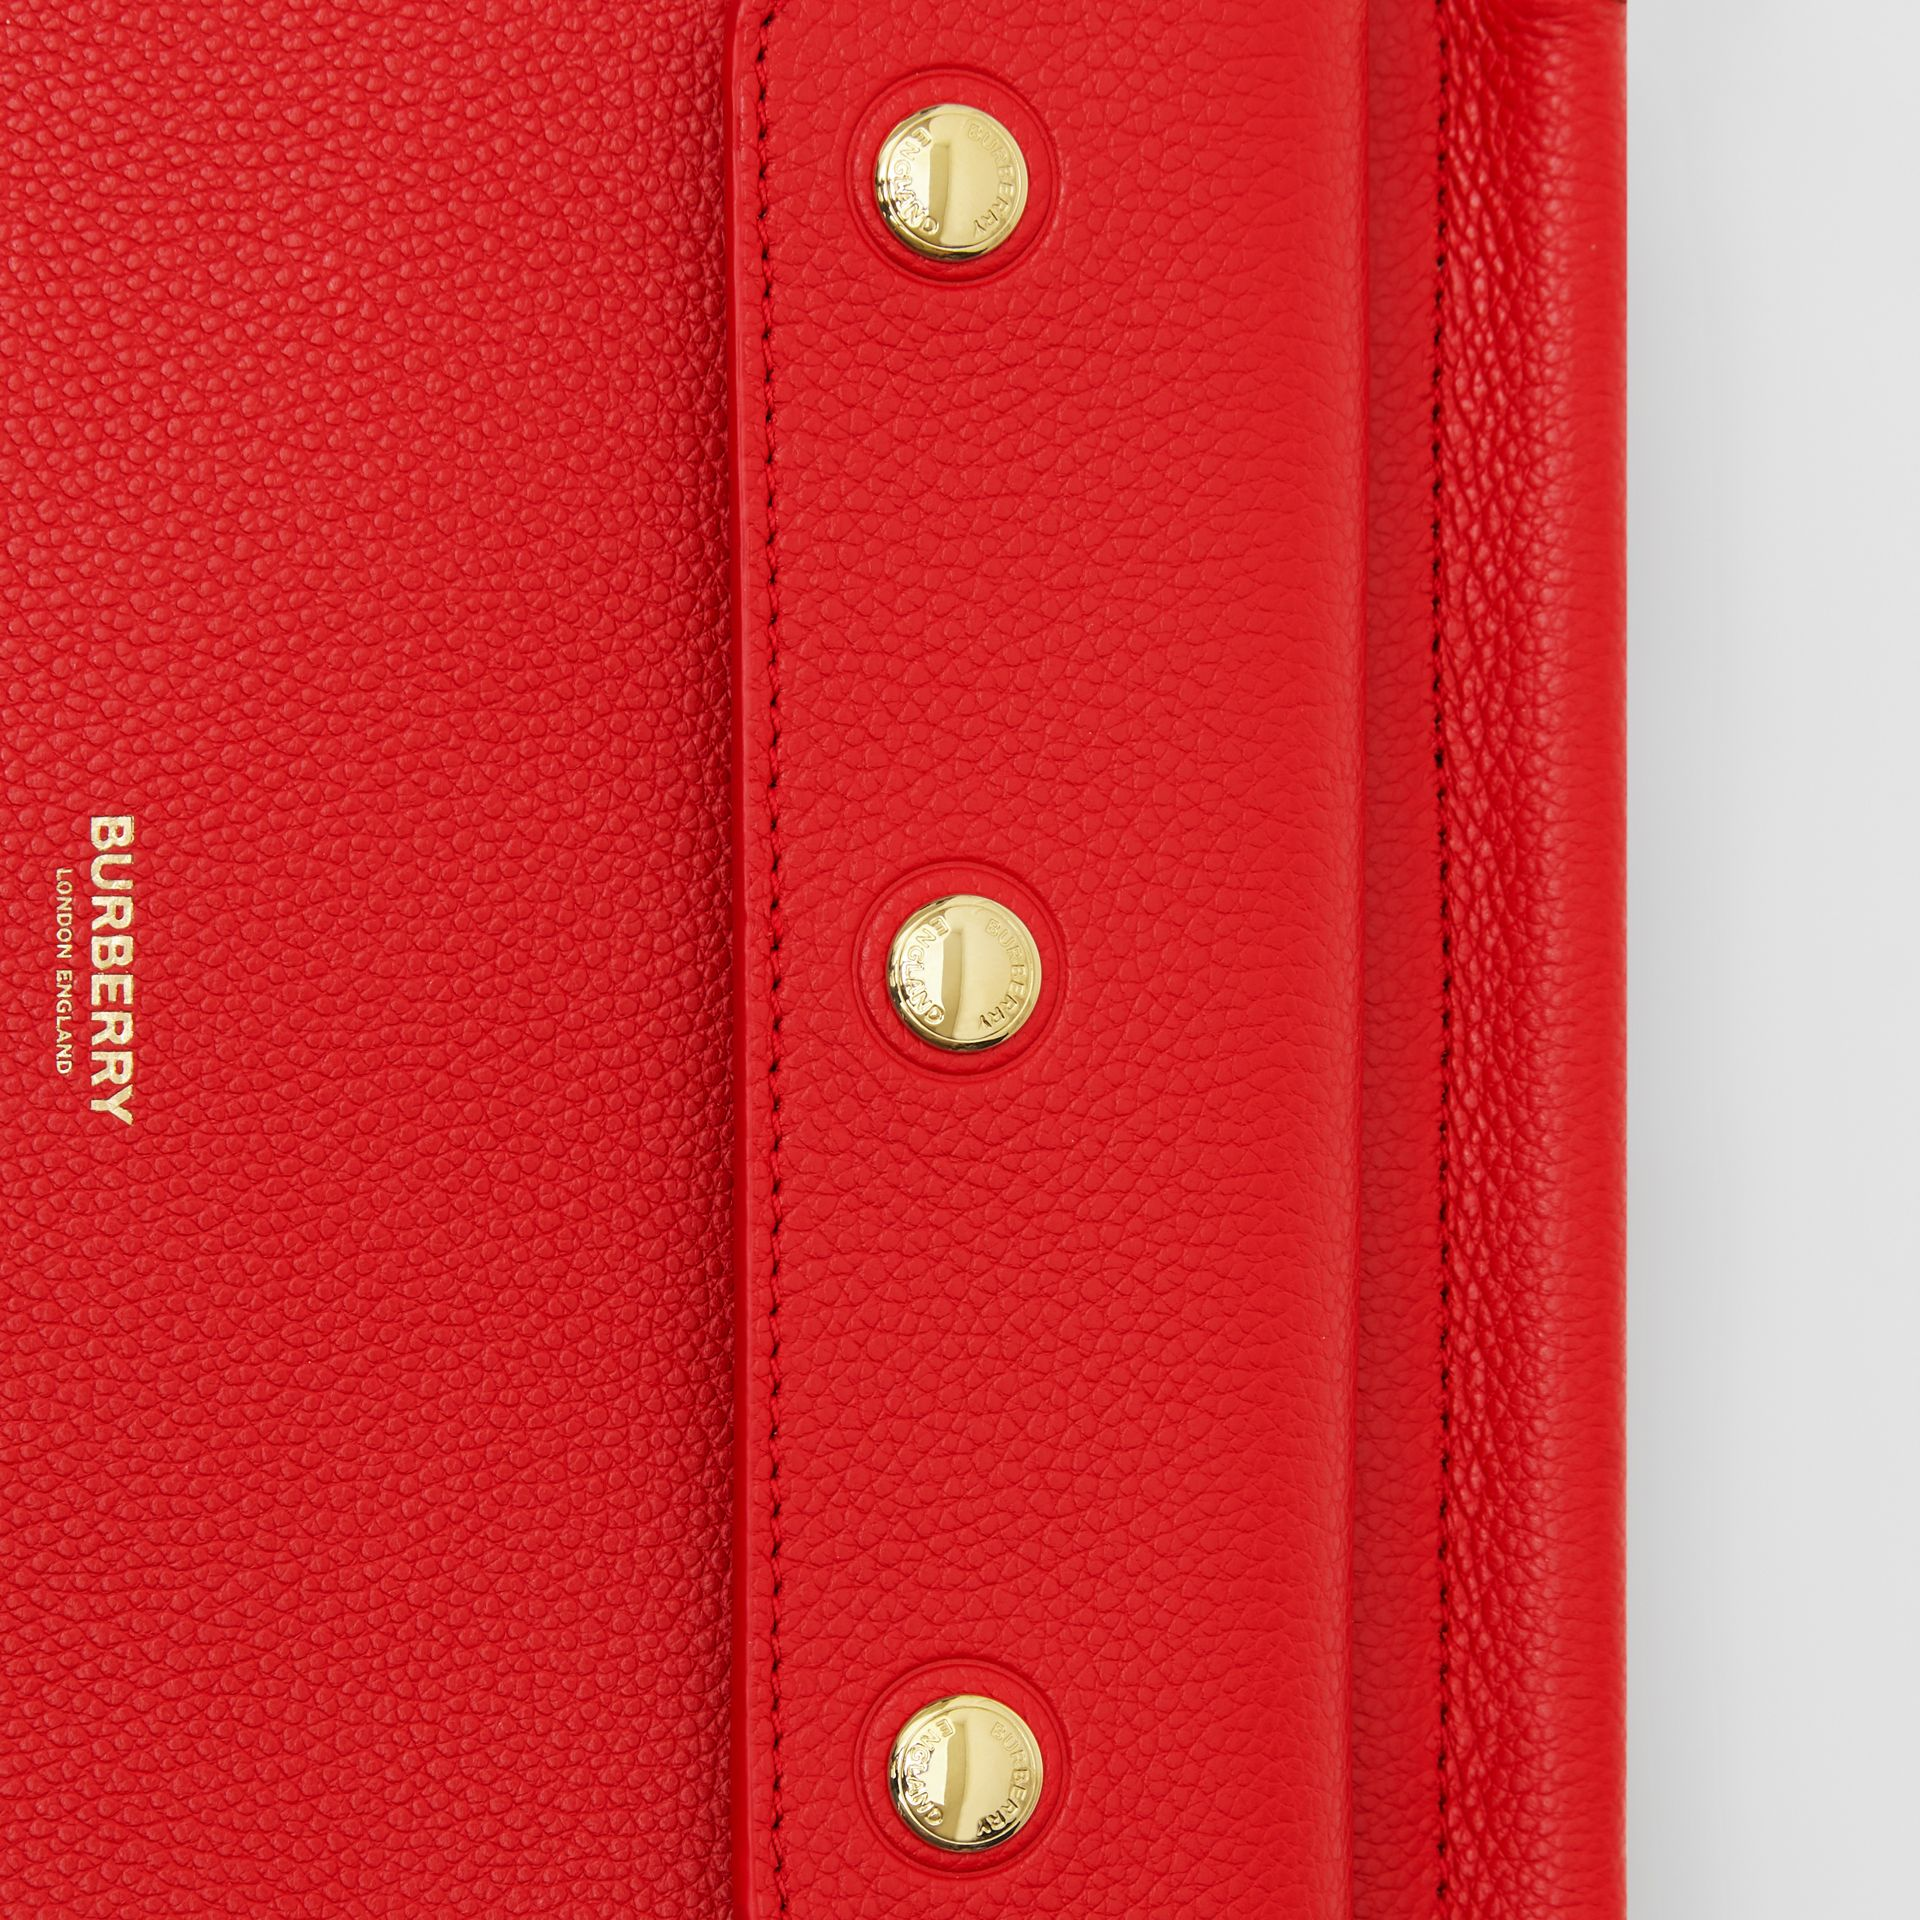 Mini Leather Title Bag with Pocket Detail in Bright Military Red - Women | Burberry Canada - gallery image 1